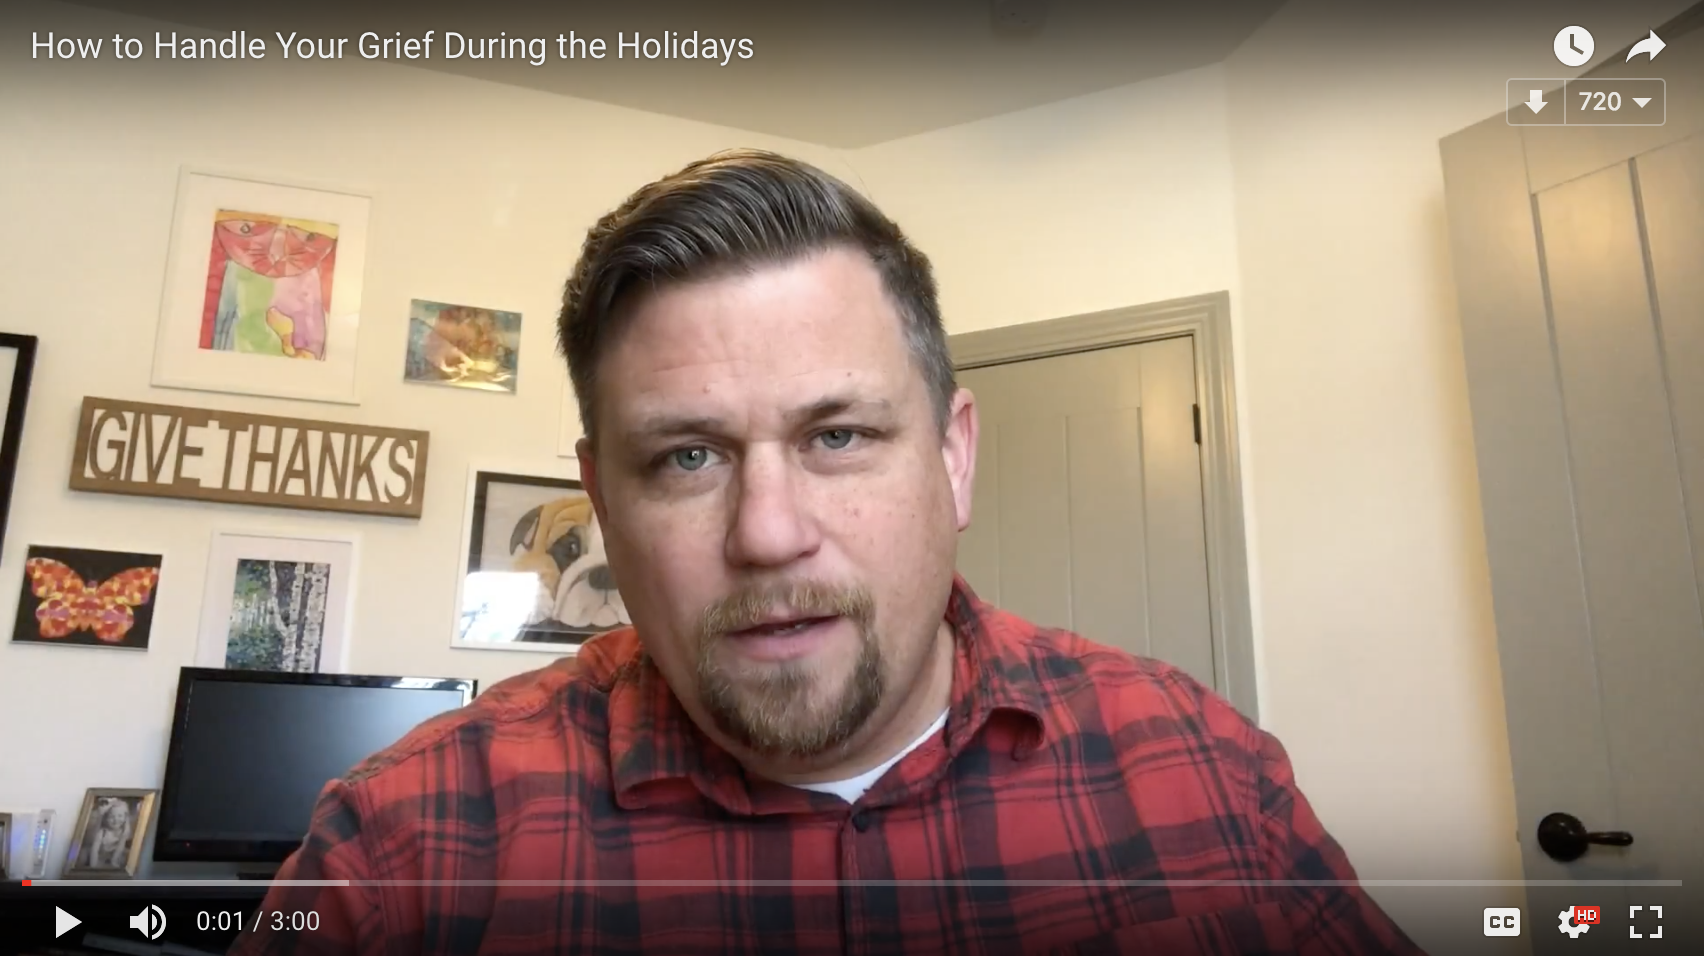 What to Do with Your Grief During the Holidays